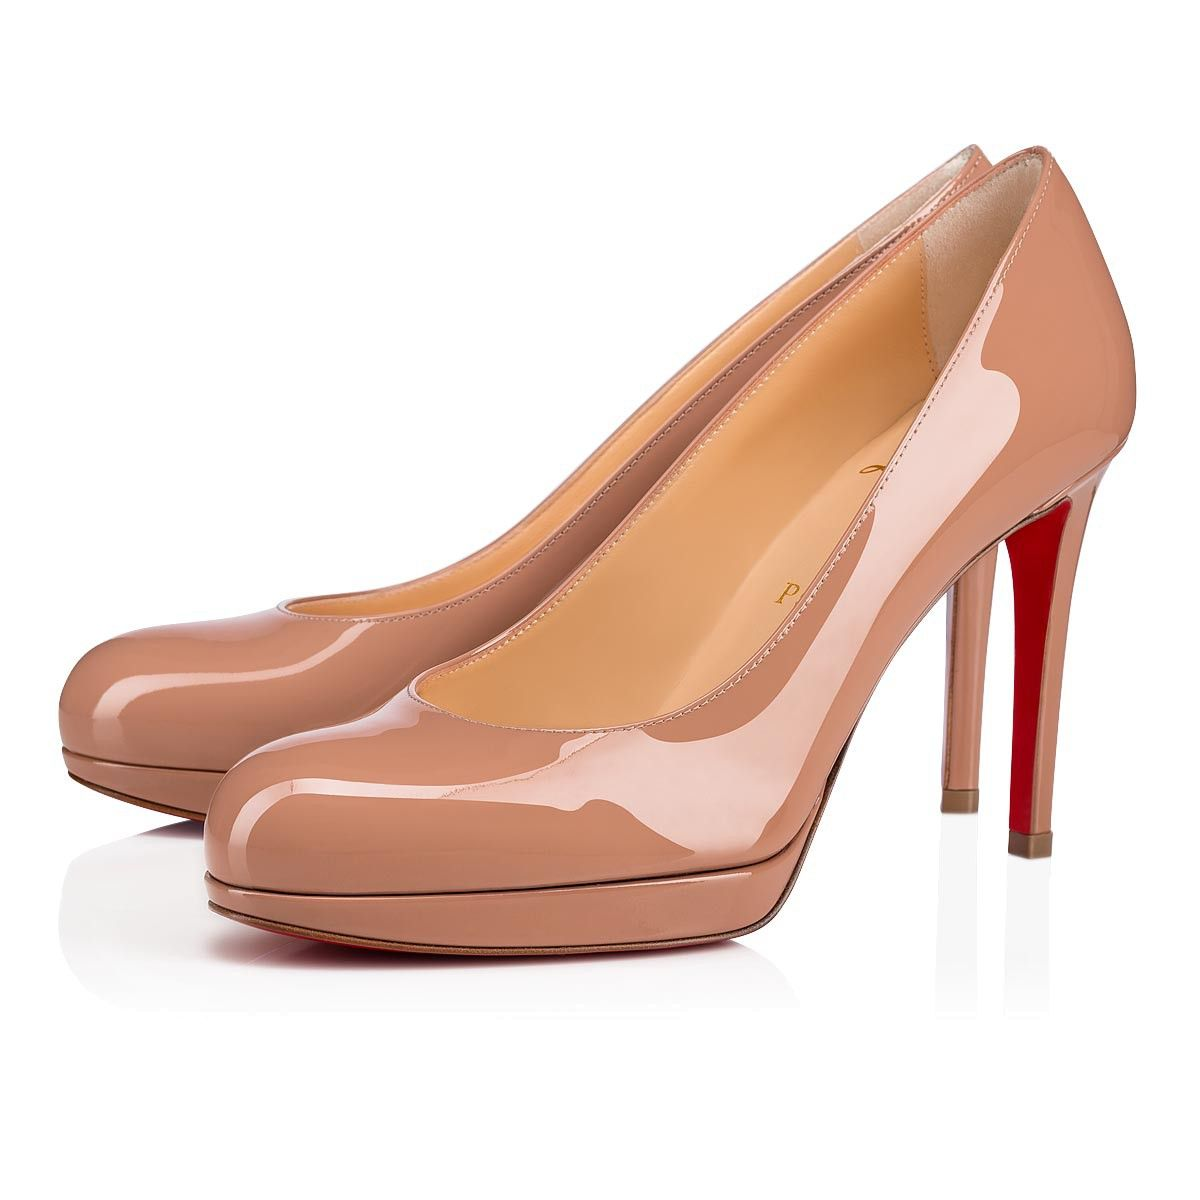 best authentic f2854 ff3b7 Christian Louboutin New Simple Pump in 2019 | Shoes | Shoes ...